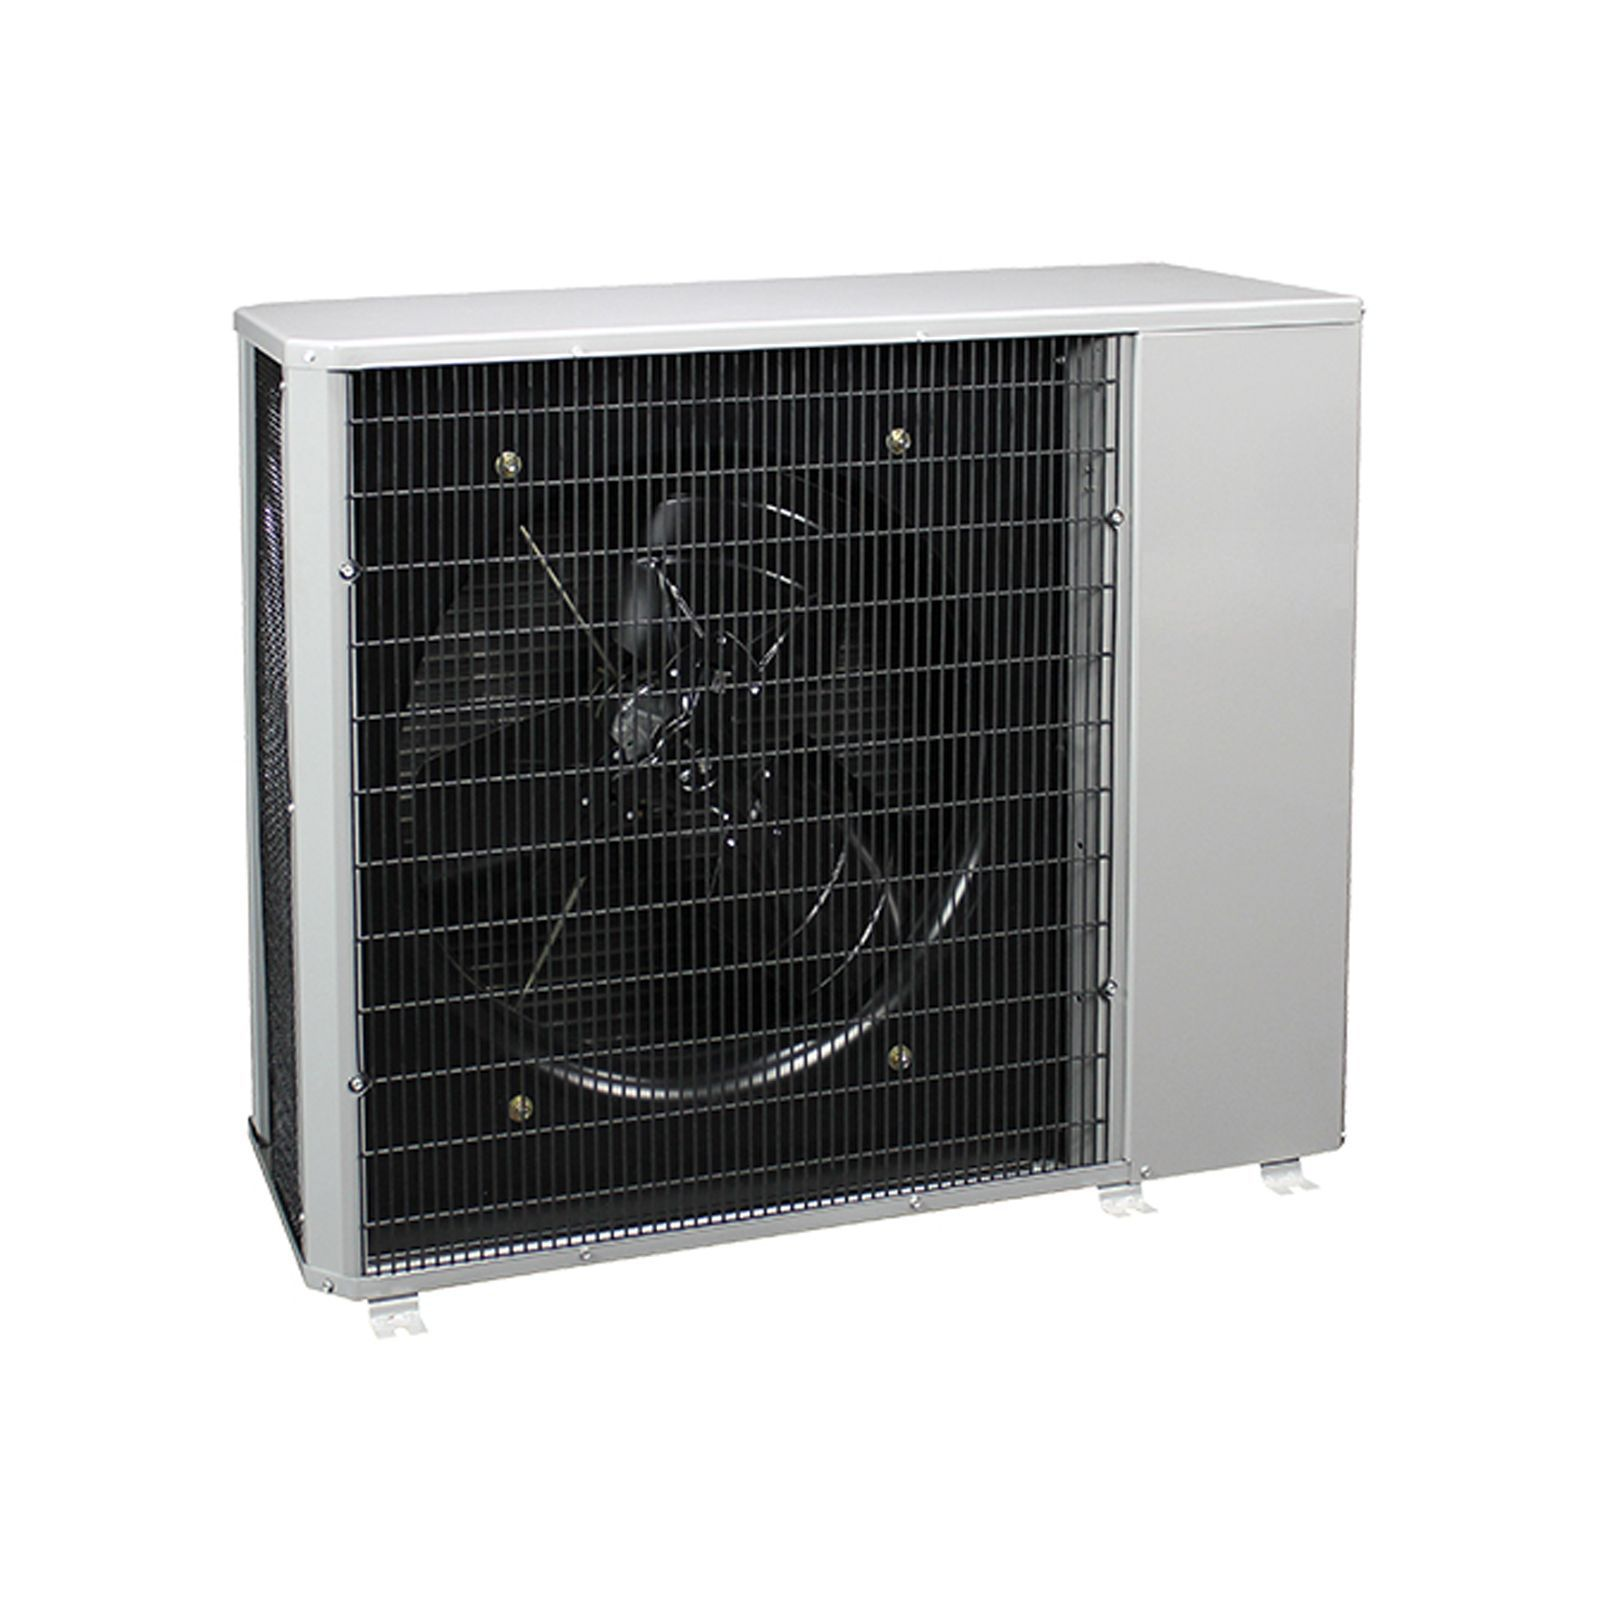 Tempstar NH4A448AKA - 4 Ton, 14 SEER Performance 14 Air Conditioner